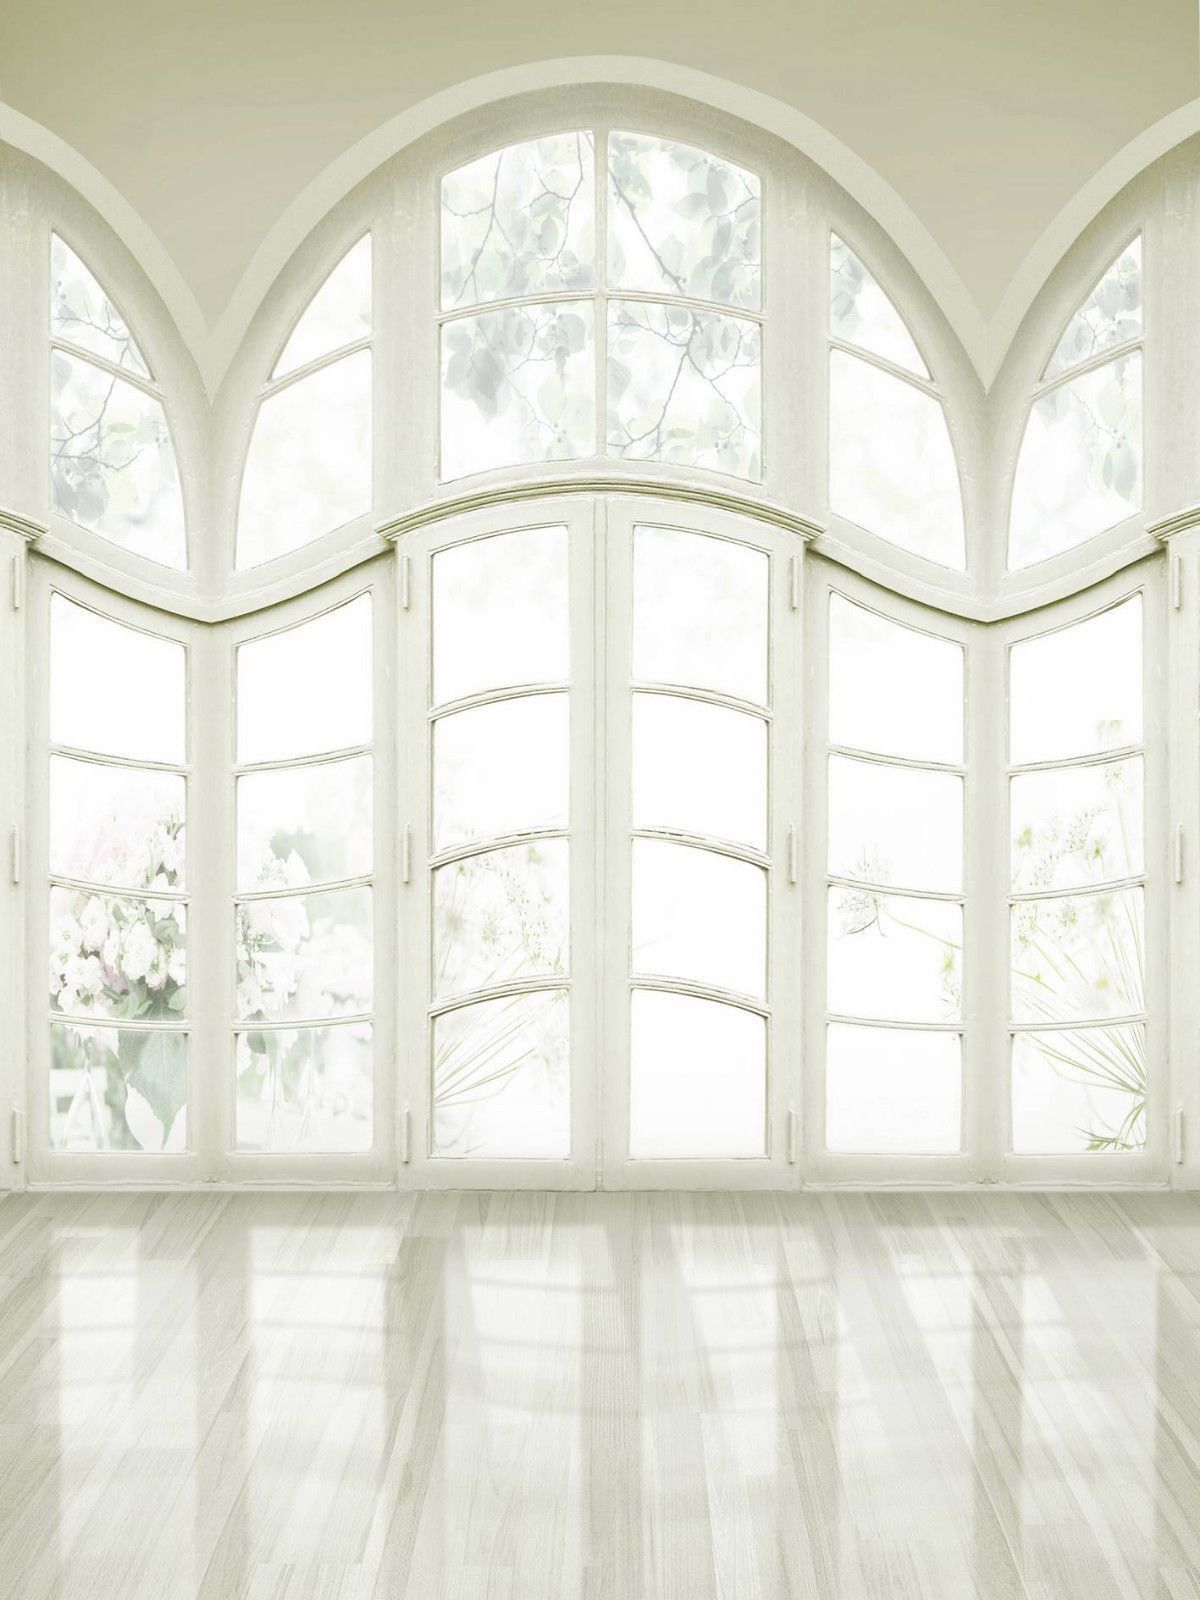 White Windows Wedding Photography Studio Backdrop 10x20 Only Studio Photography Lighting Studio Backdrops Studio Photography